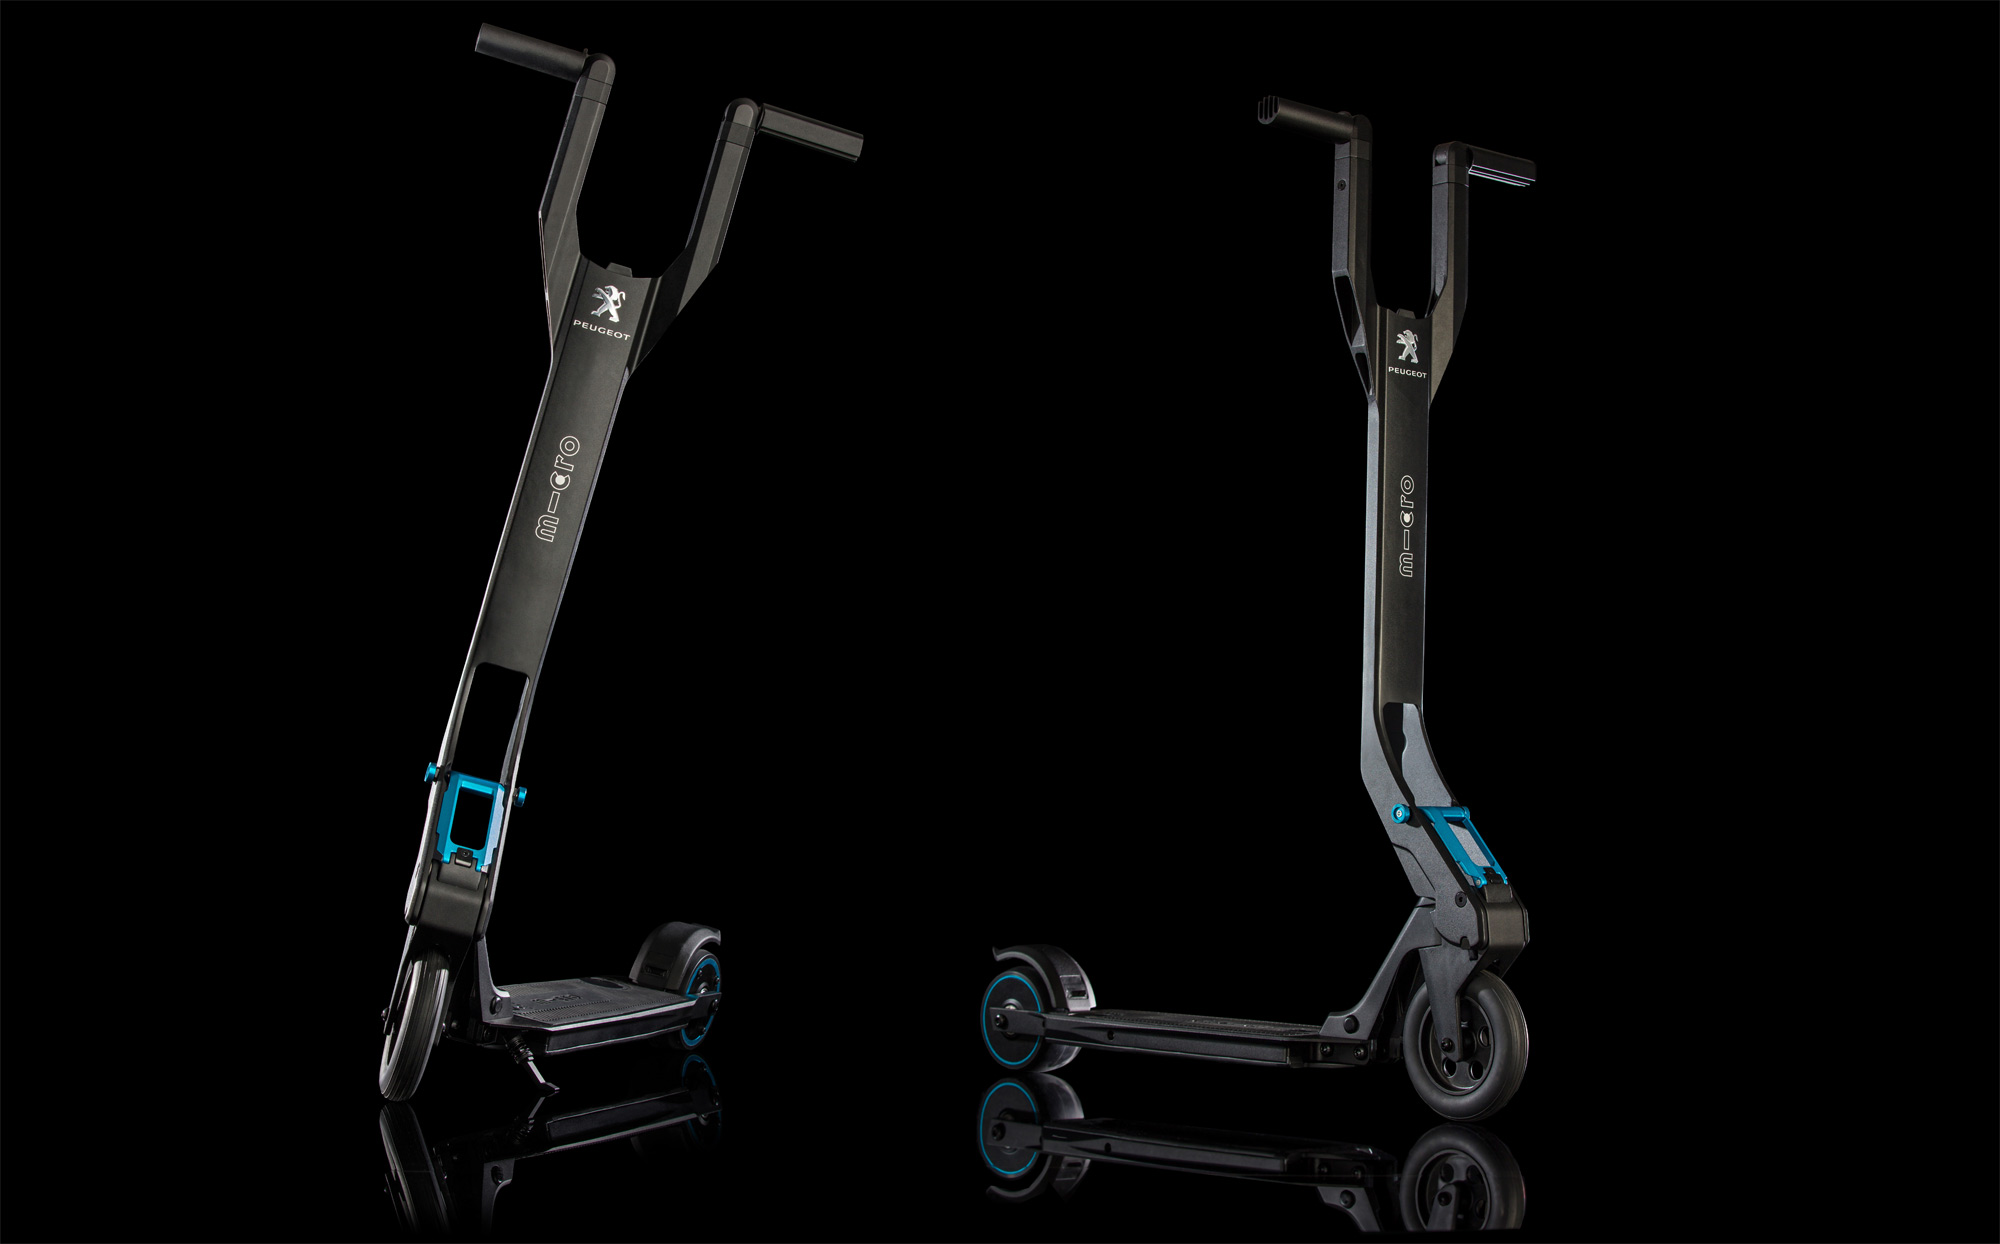 The e-Kick Electric Scooter From Peugeot And Micro